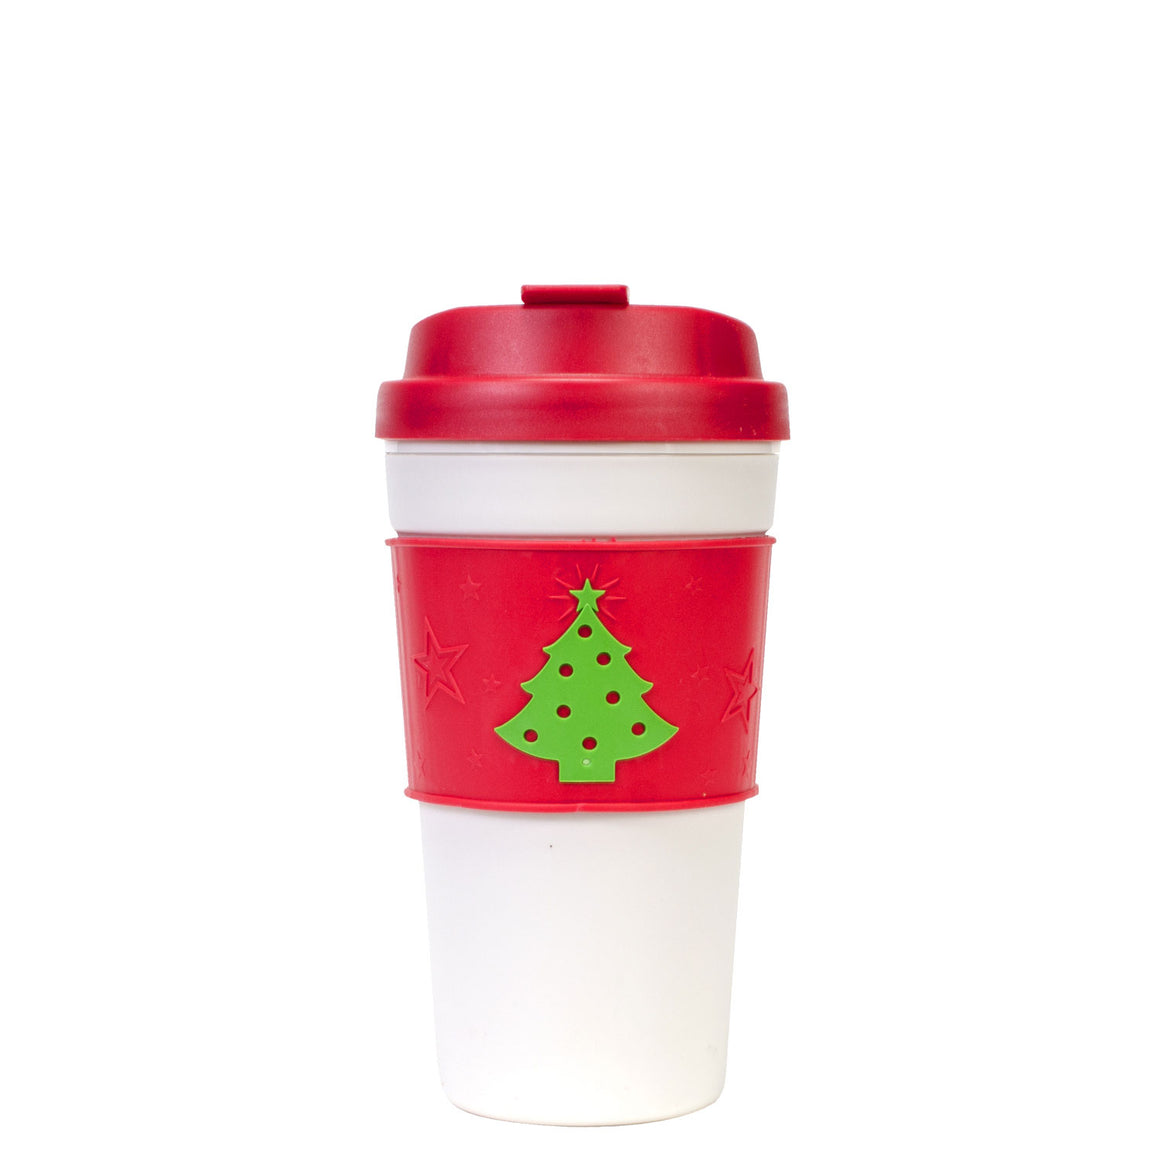 Red / Christmas Trees 15 Oz Holiday Coffee Mug with Reversible Band at Cool Gear Winter Holiday